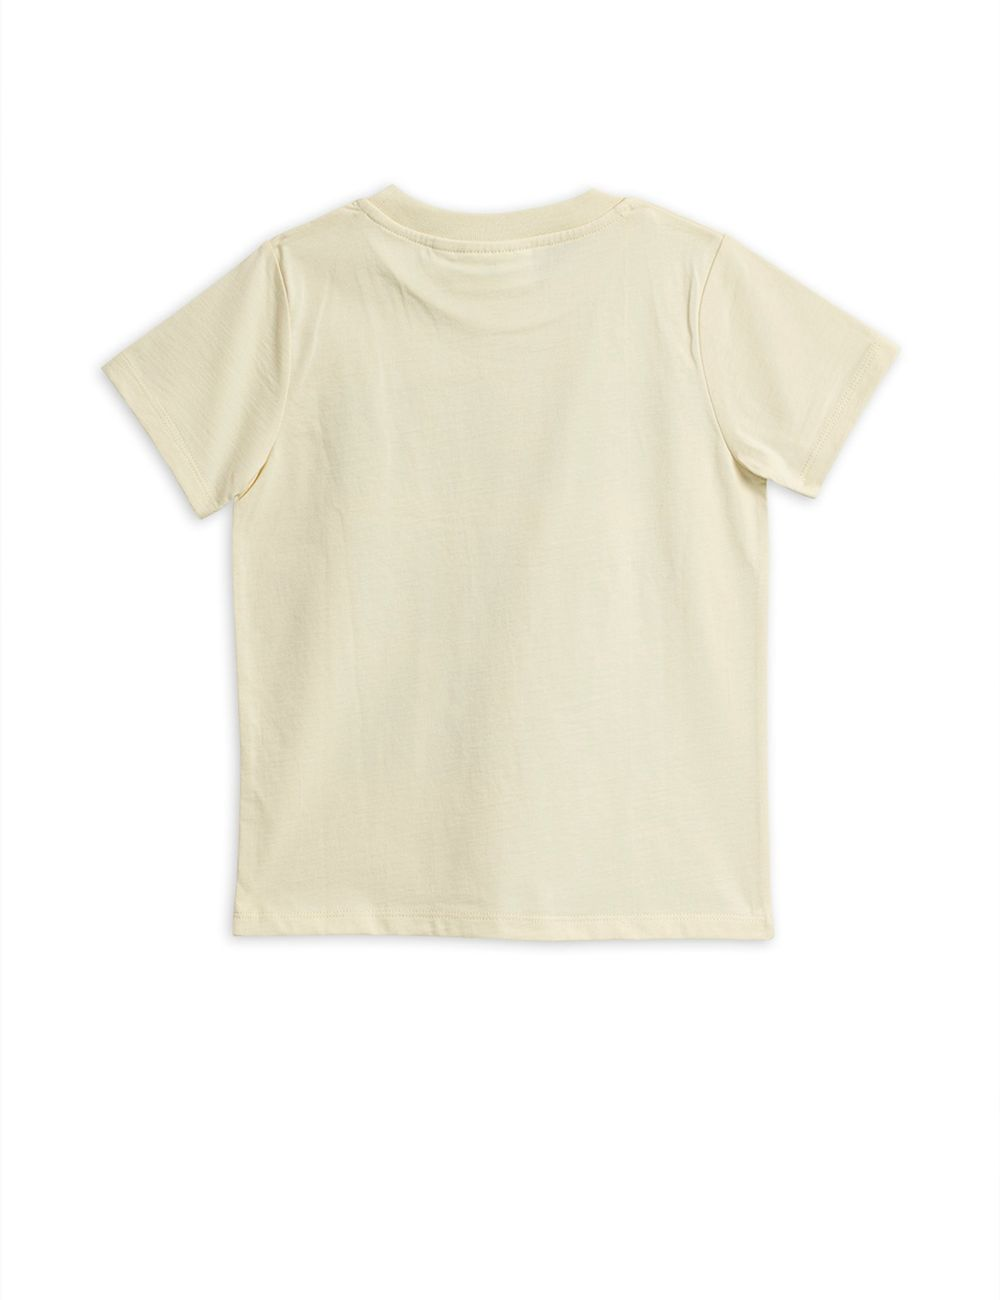 MINI RODINI BLAH SP SS TEE, OFFWHITE